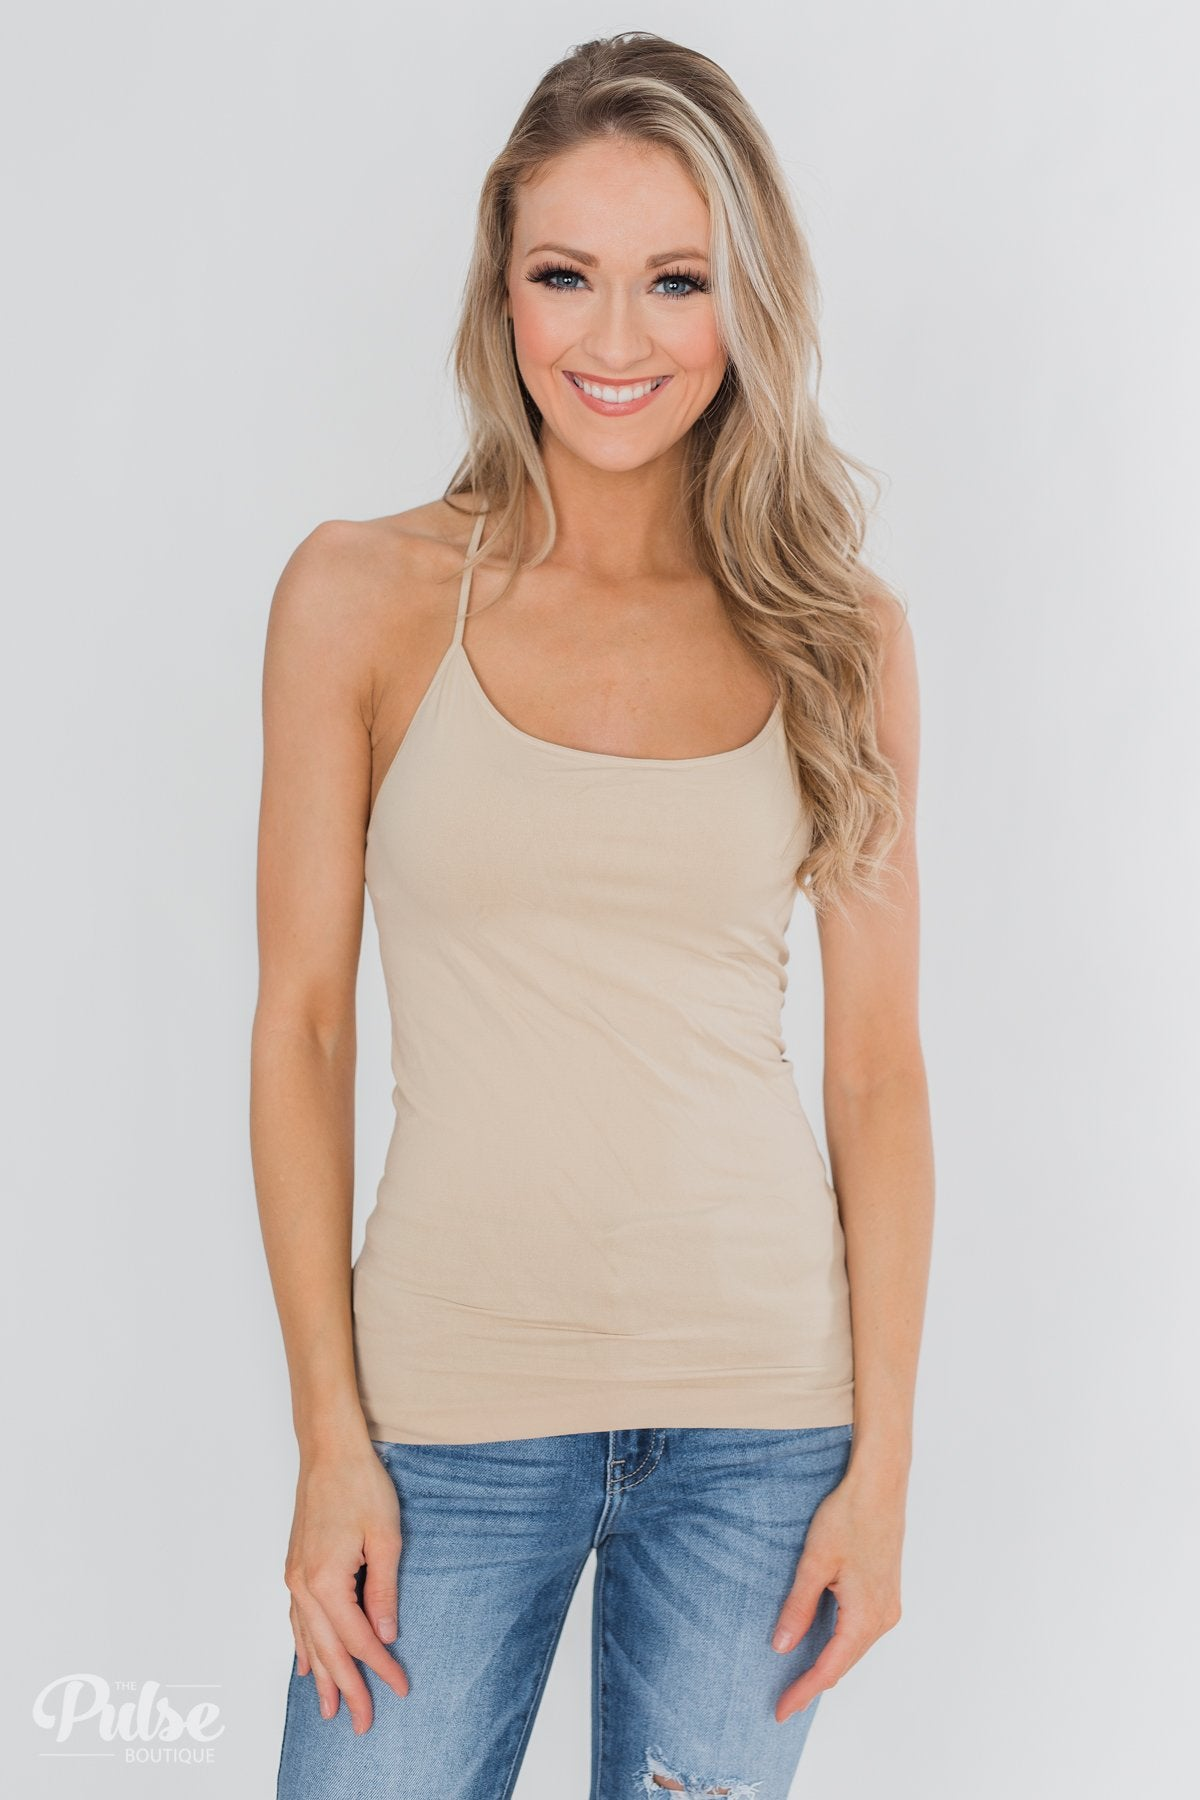 Keep Me Company Color Block Top - Grey & Dusty Pink